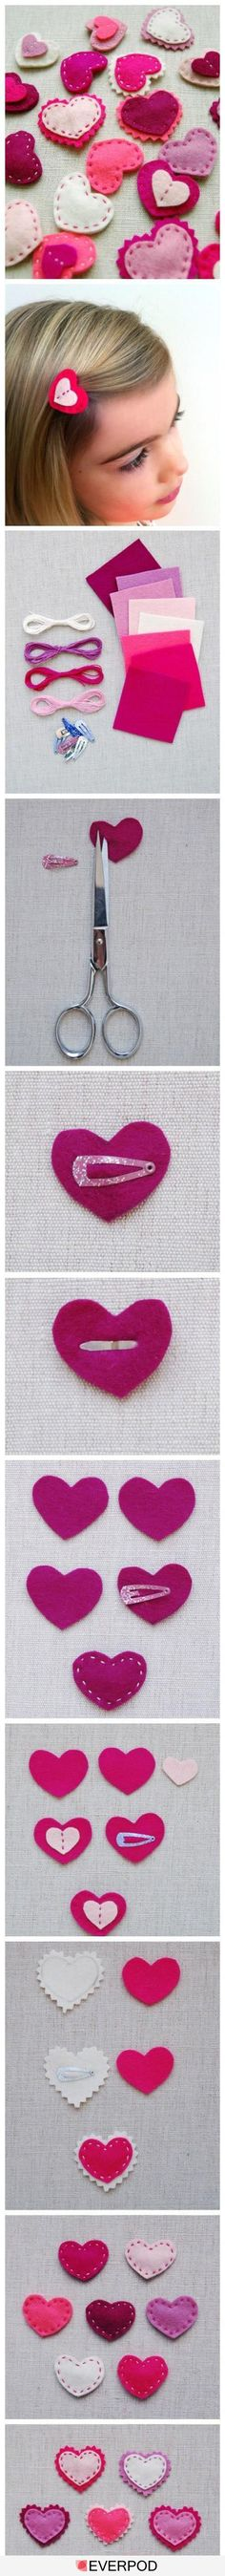 DIY Heart Hair Clip